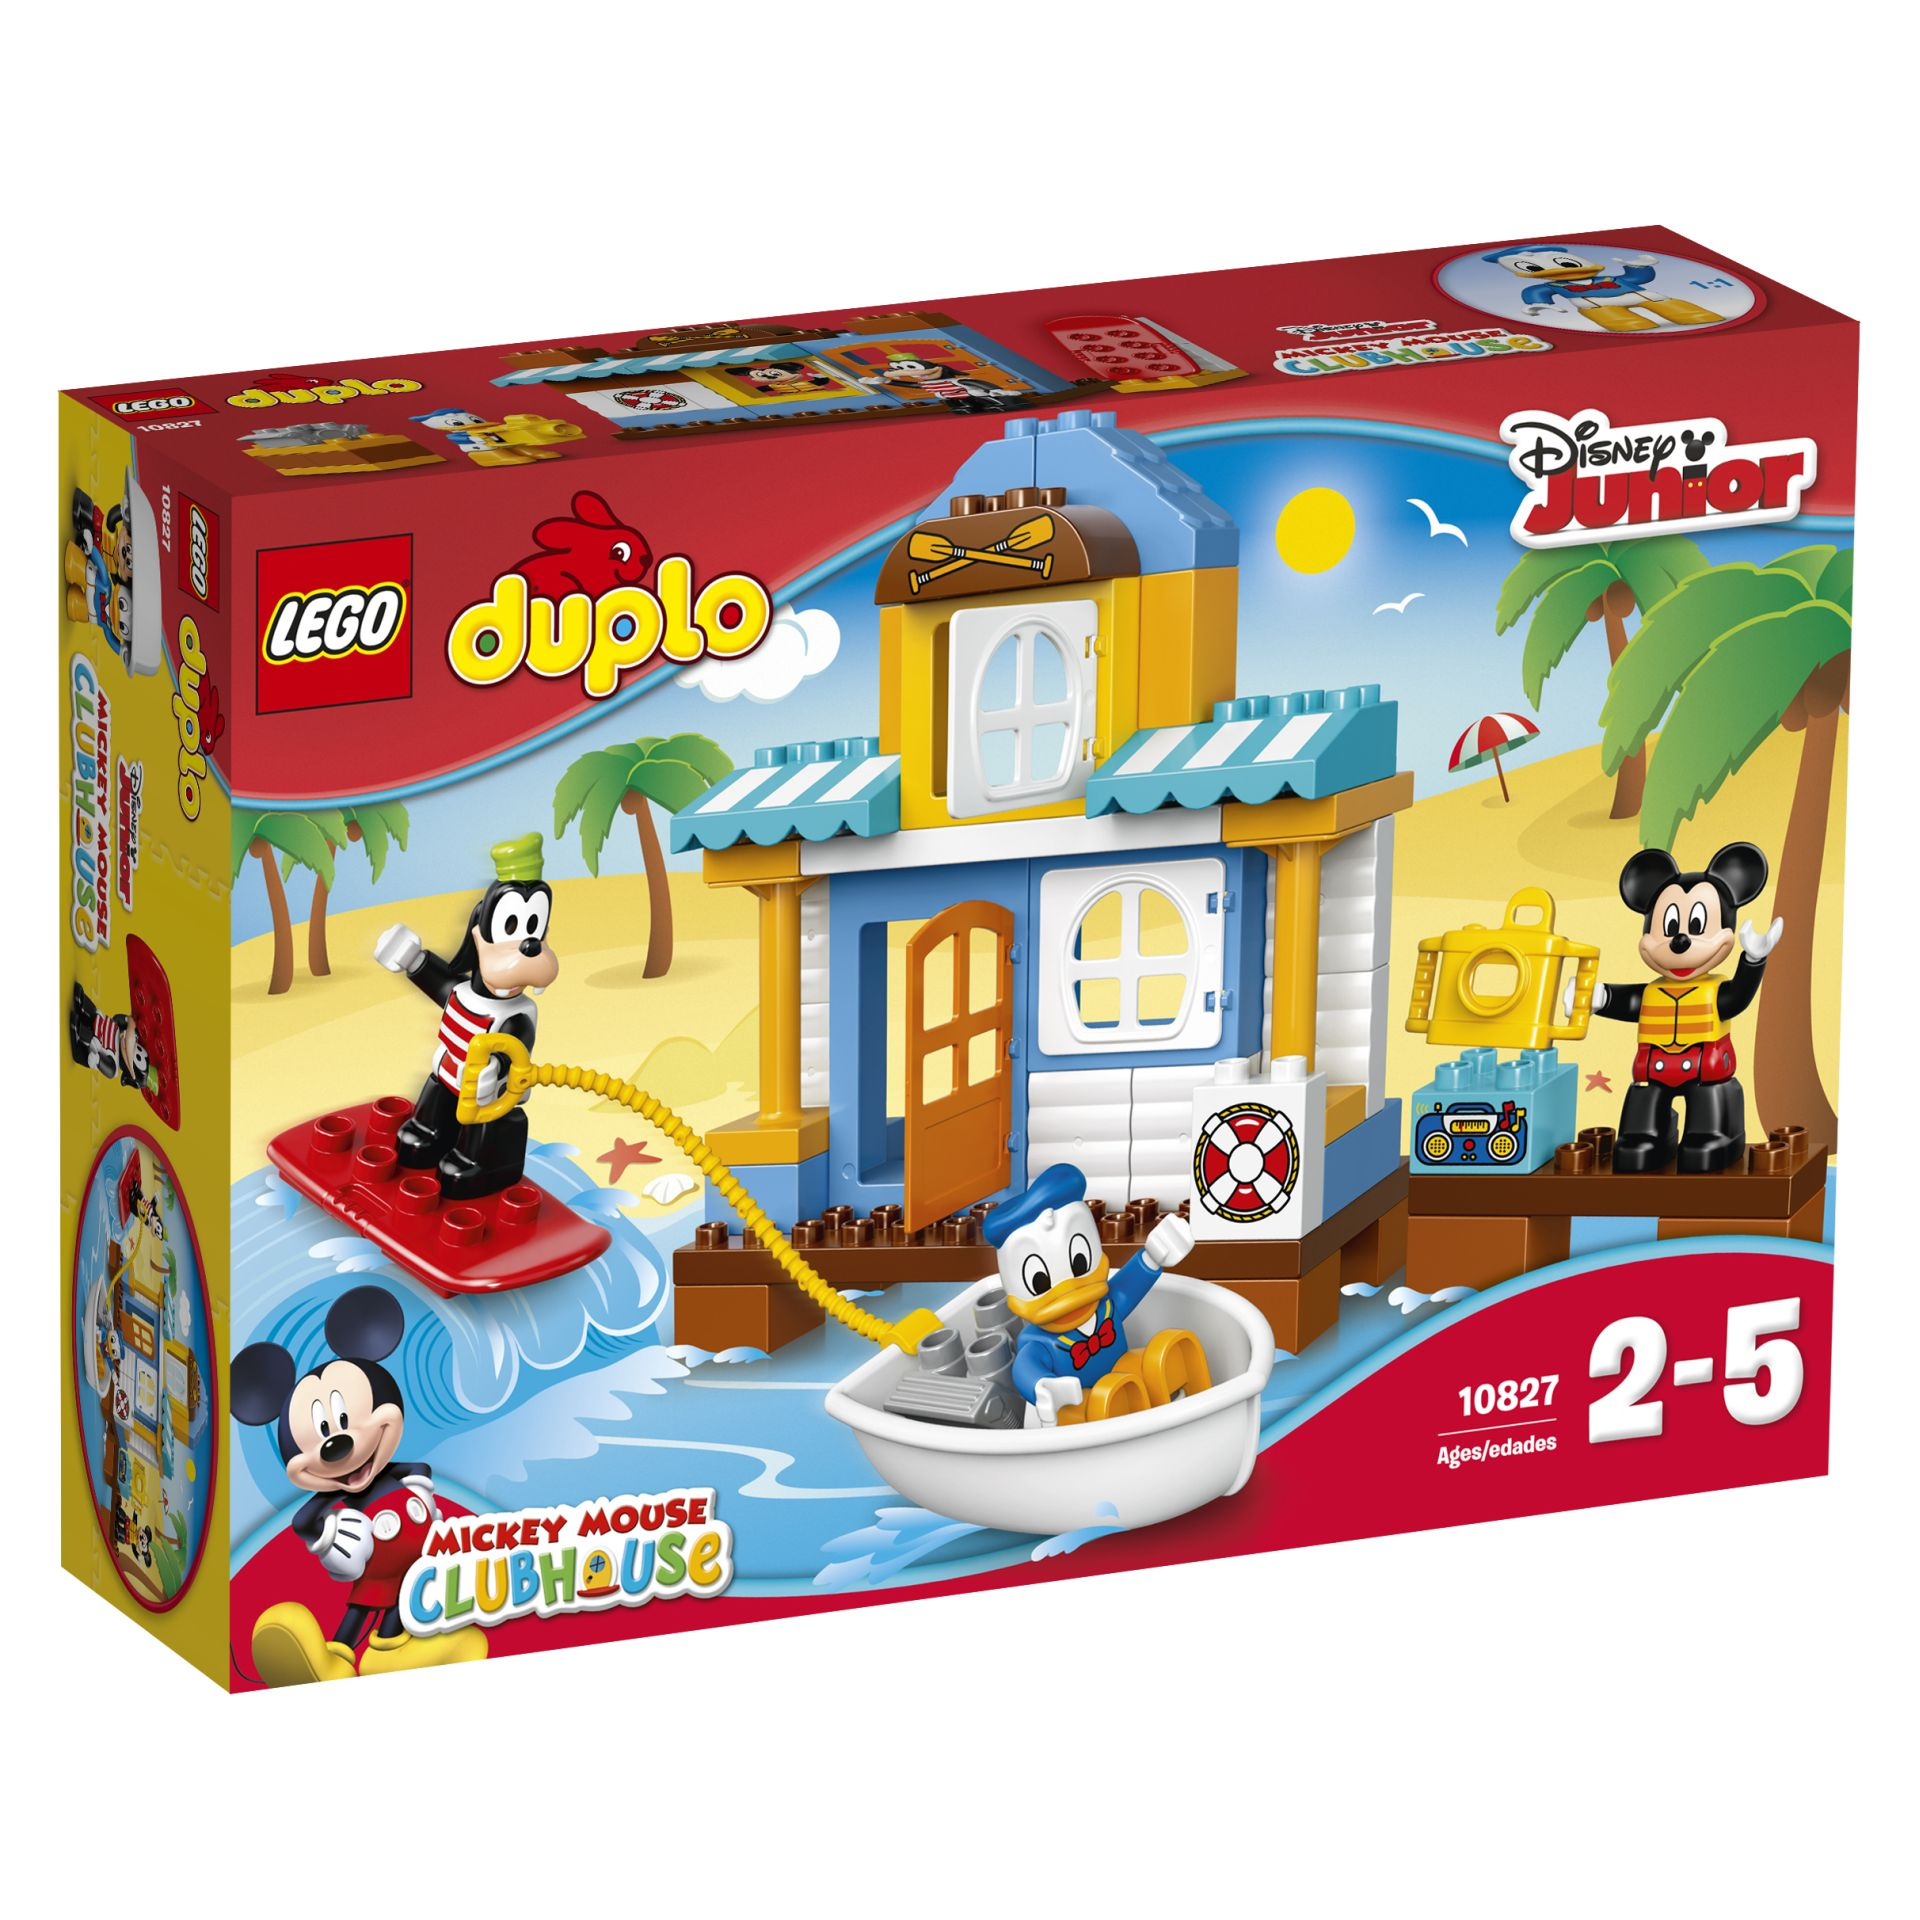 lego la maison de plage de mickey de duplo disney 2017 acheter sur kidsroom jouet. Black Bedroom Furniture Sets. Home Design Ideas